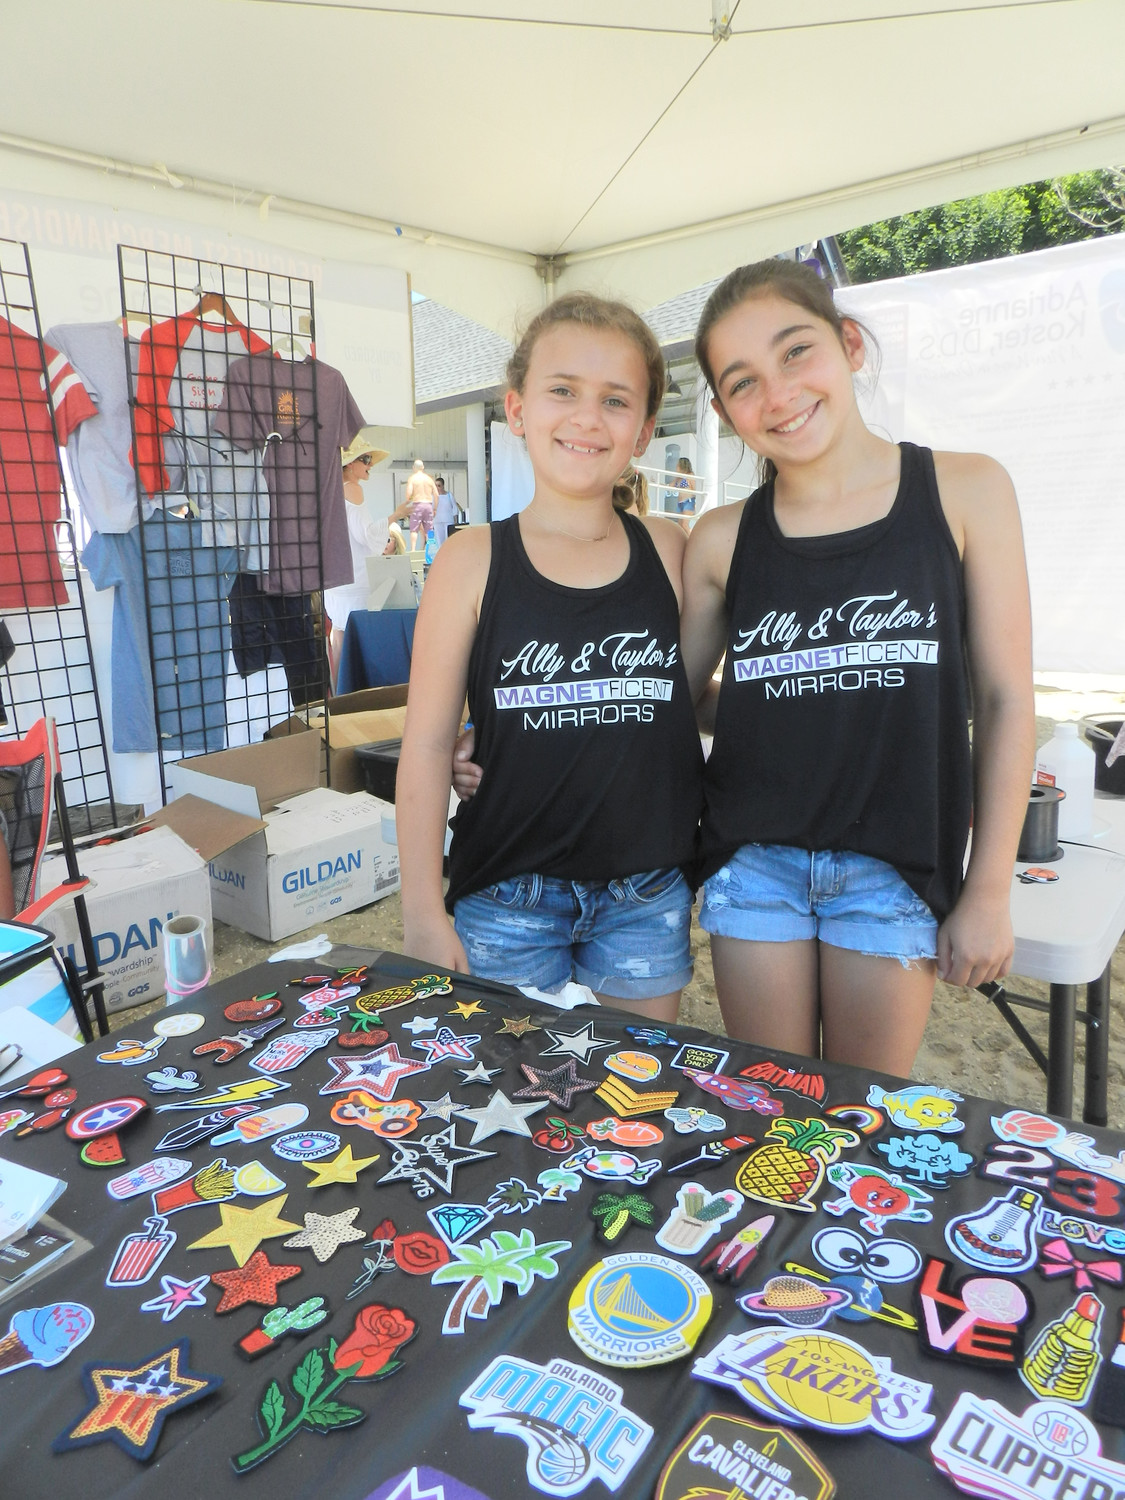 Ten-year-old entrepreneurs Taylor Silvia and Alexandra Basil brought their Magnetficent Mirrors to the beach.